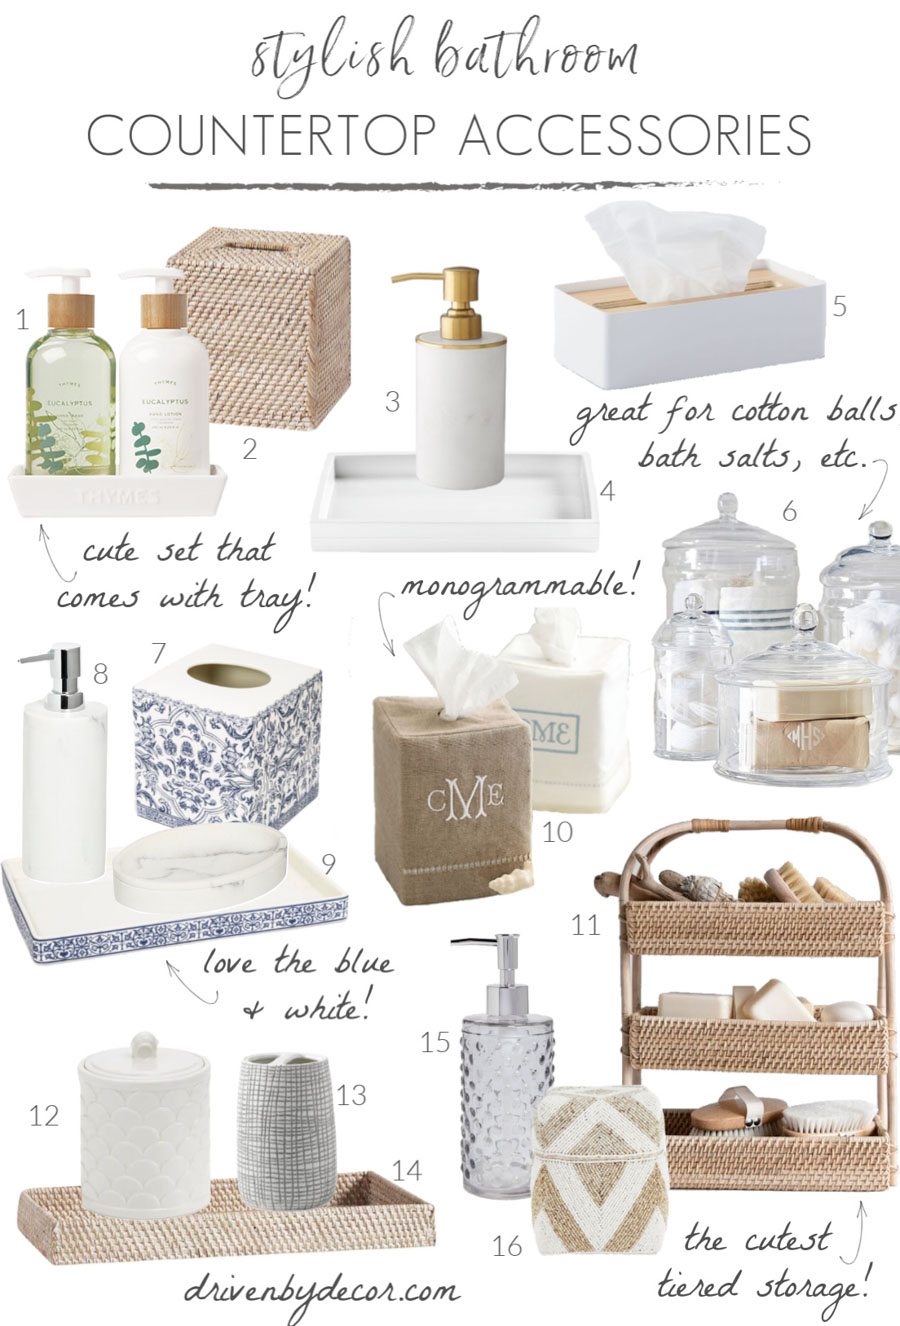 Stylish bathroom decor! Love all of these countertop accessories - soap pumps, trays, tissue boxes, & more!